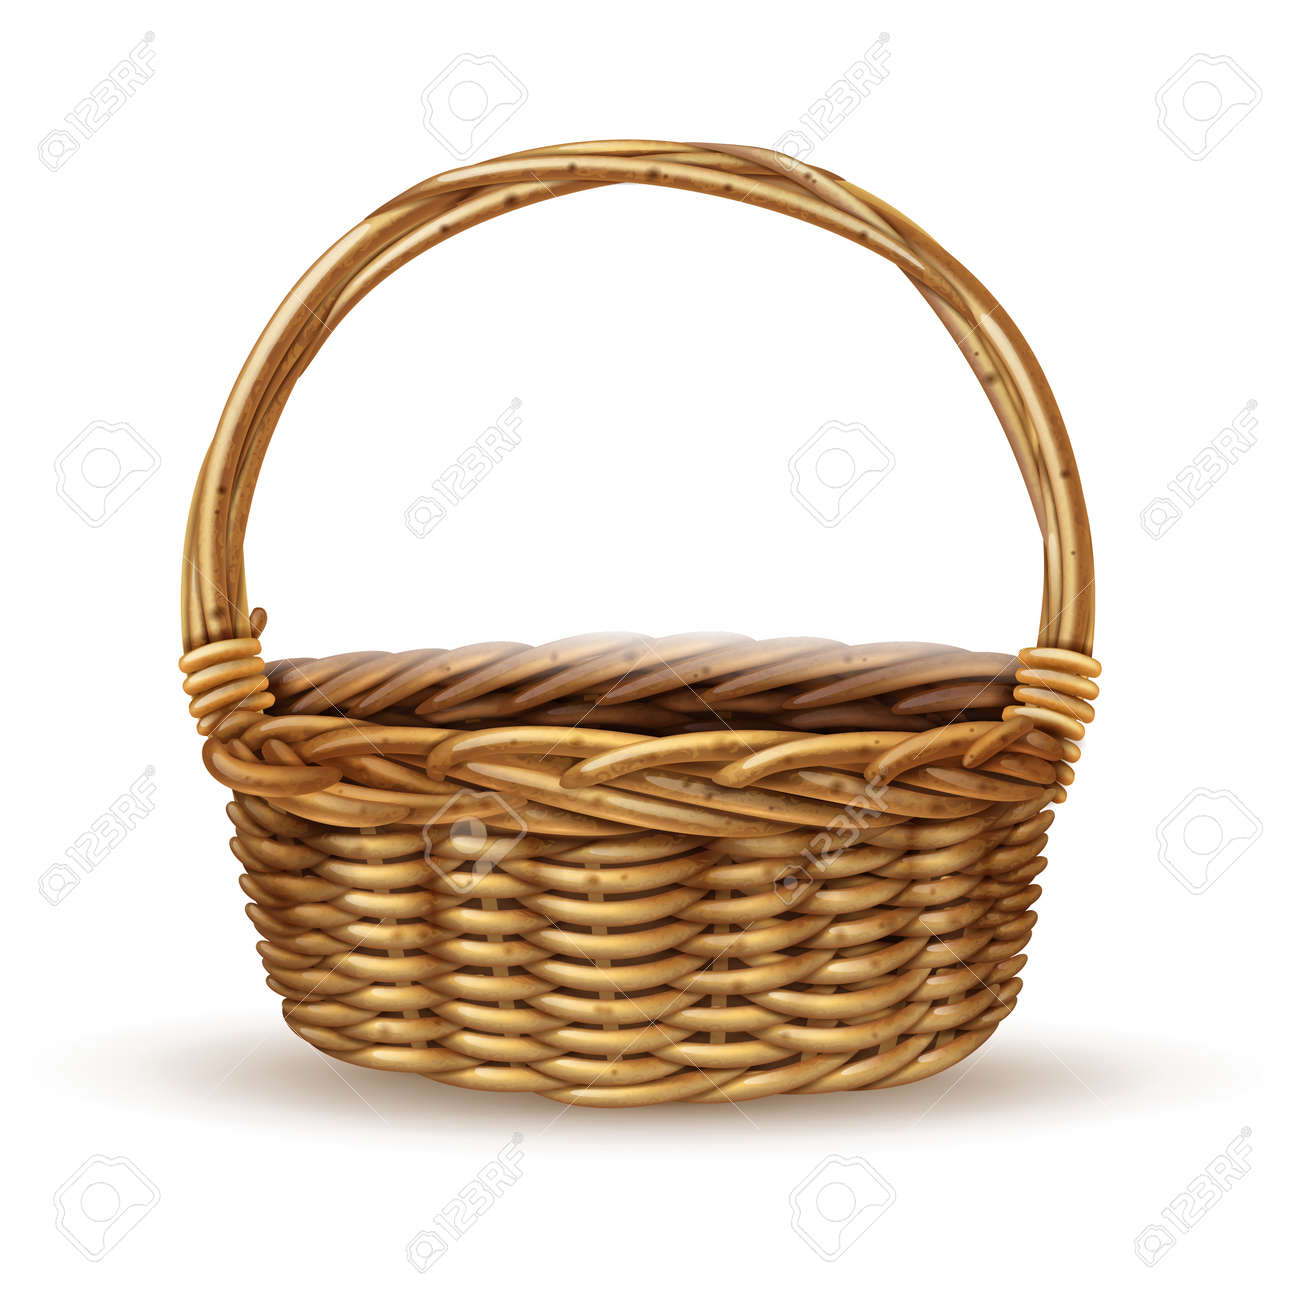 Traditional country style willow peasant basket with handle close-up side view with shadow realistic vector illustration - 165565892